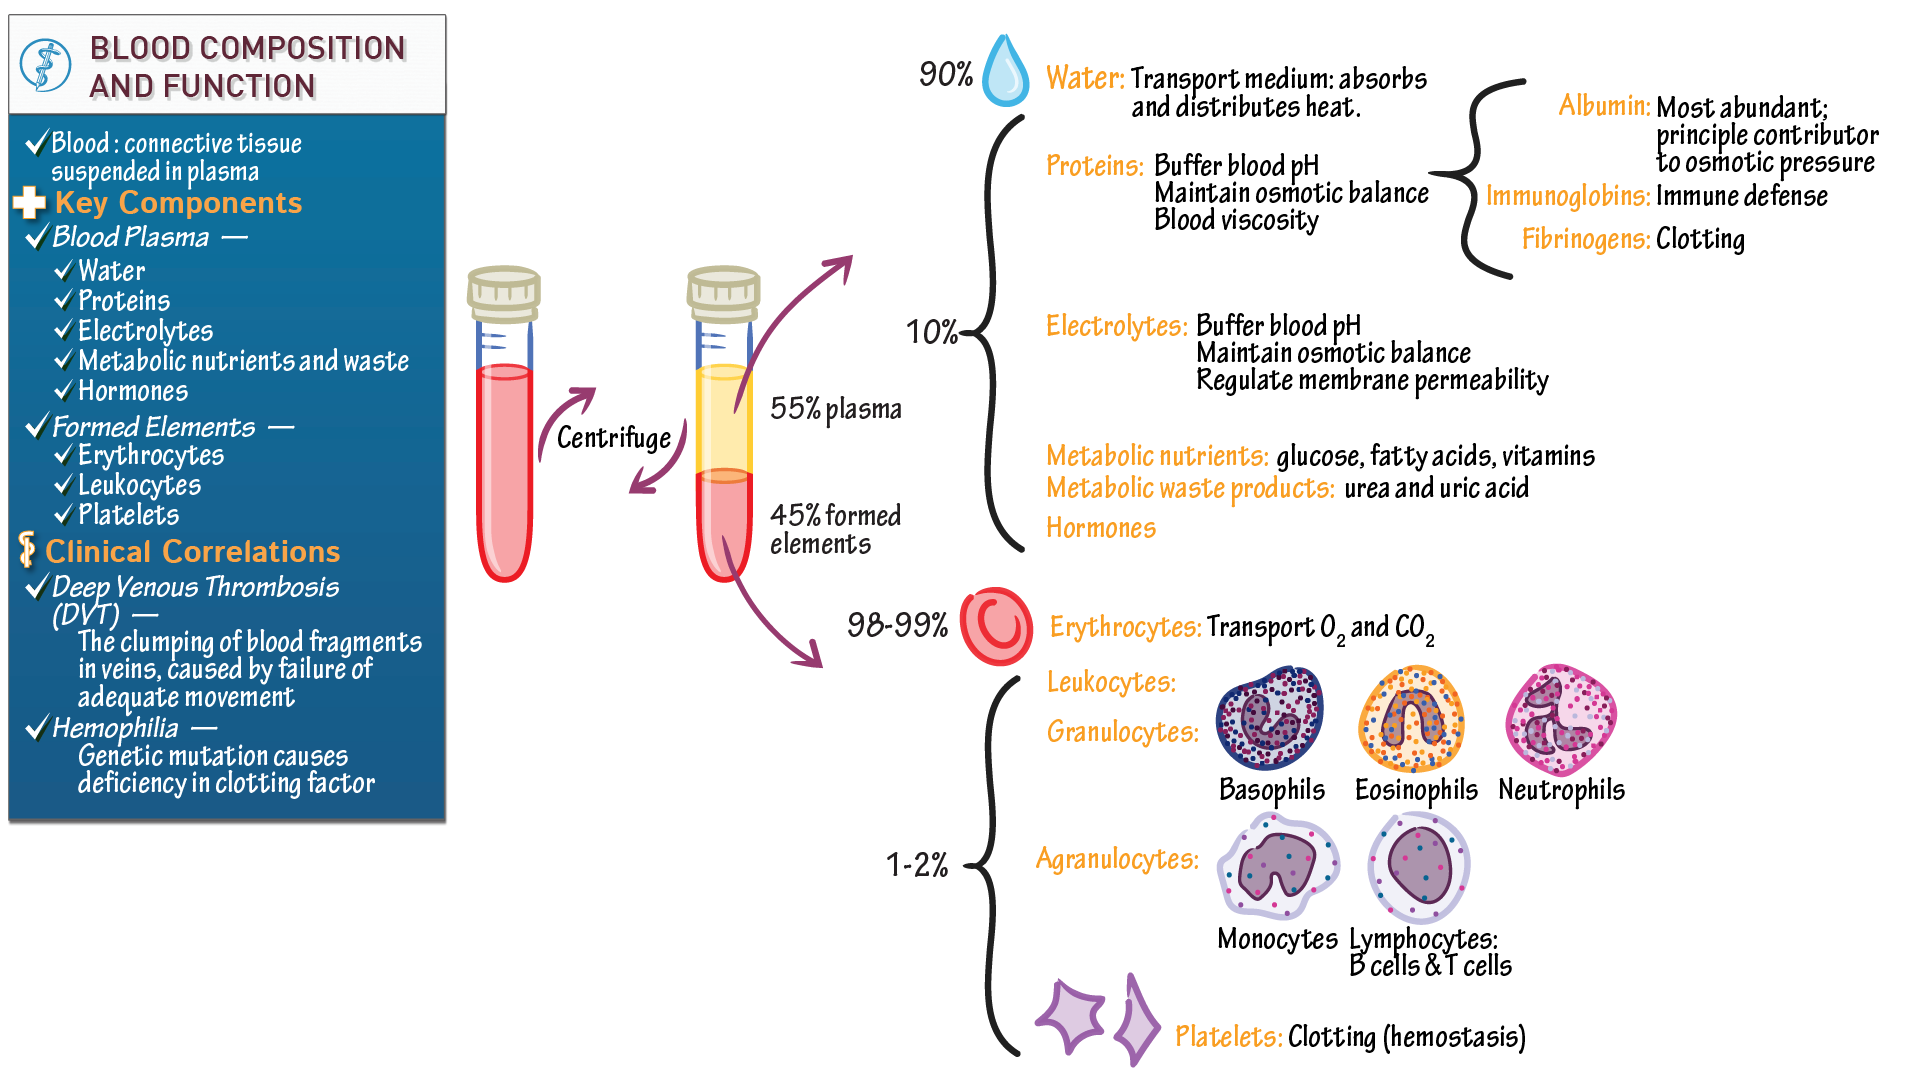 Mcat Biology Biochemistry Blood Composition And Function Draw